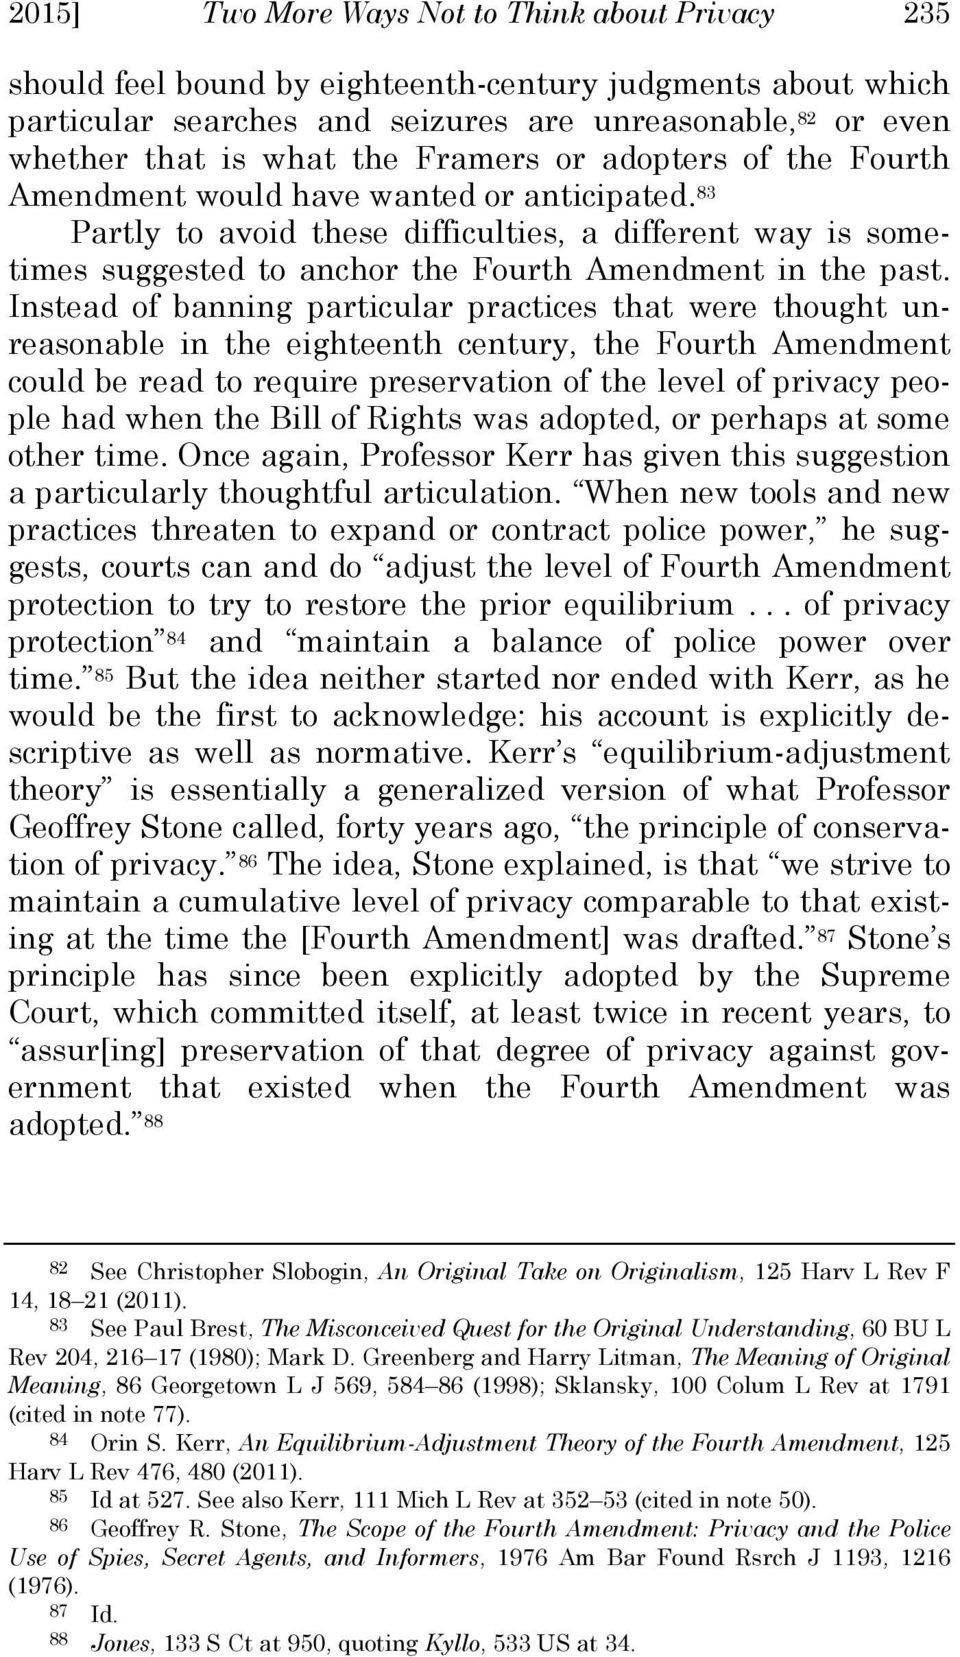 Instead of banning particular practices that were thought unreasonable in the eighteenth century, the Fourth Amendment could be read to require preservation of the level of privacy people had when